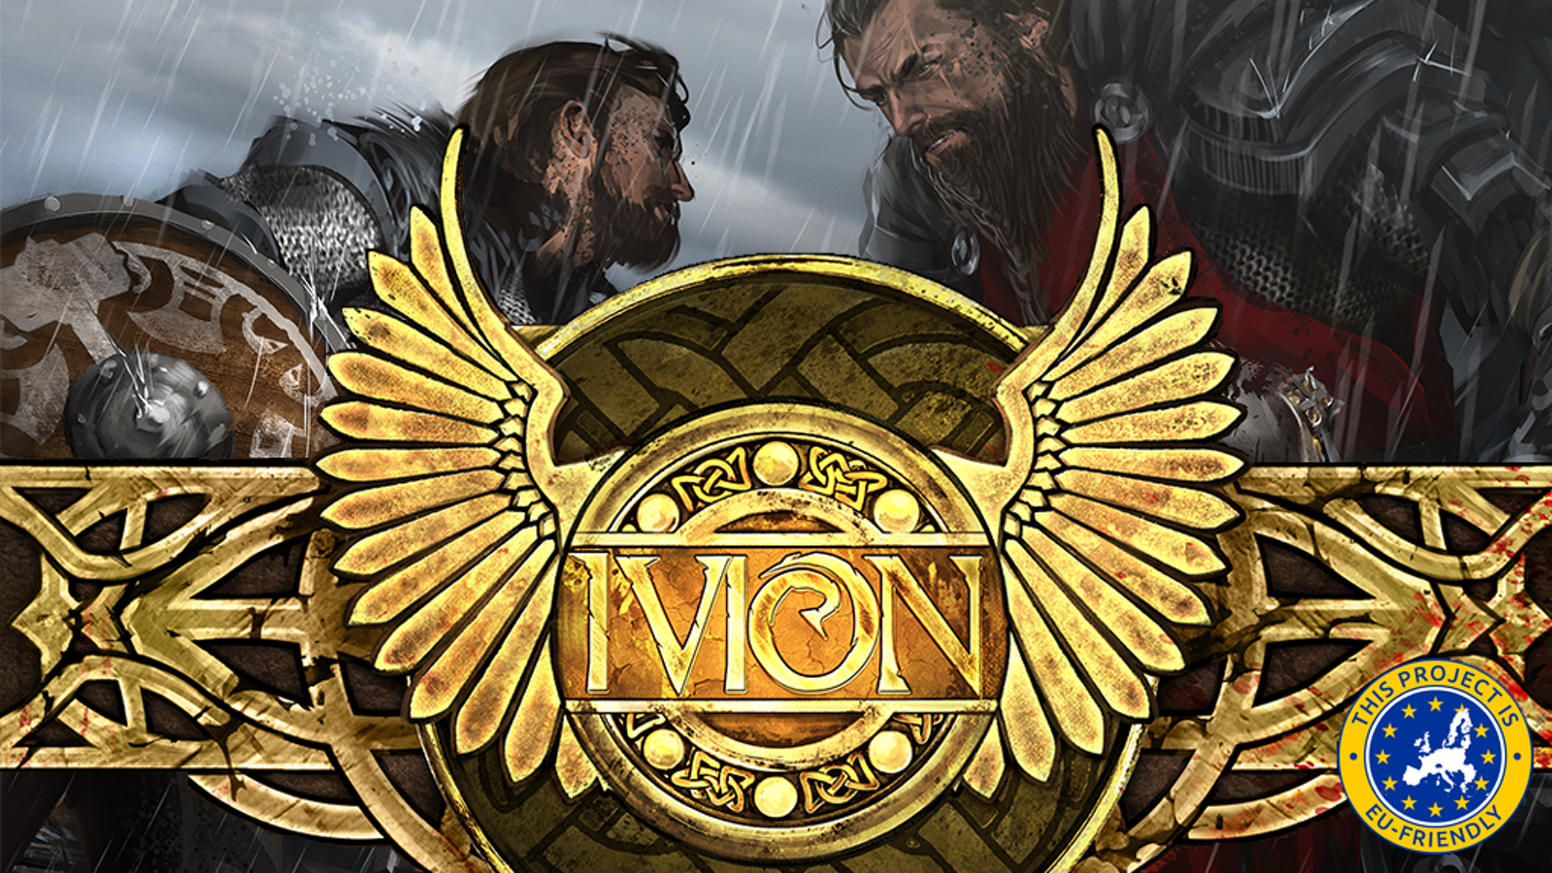 Ivion mixes intense fighting game combat with the strategy of card games. Your deck IS your character, and the battle will be bloody.